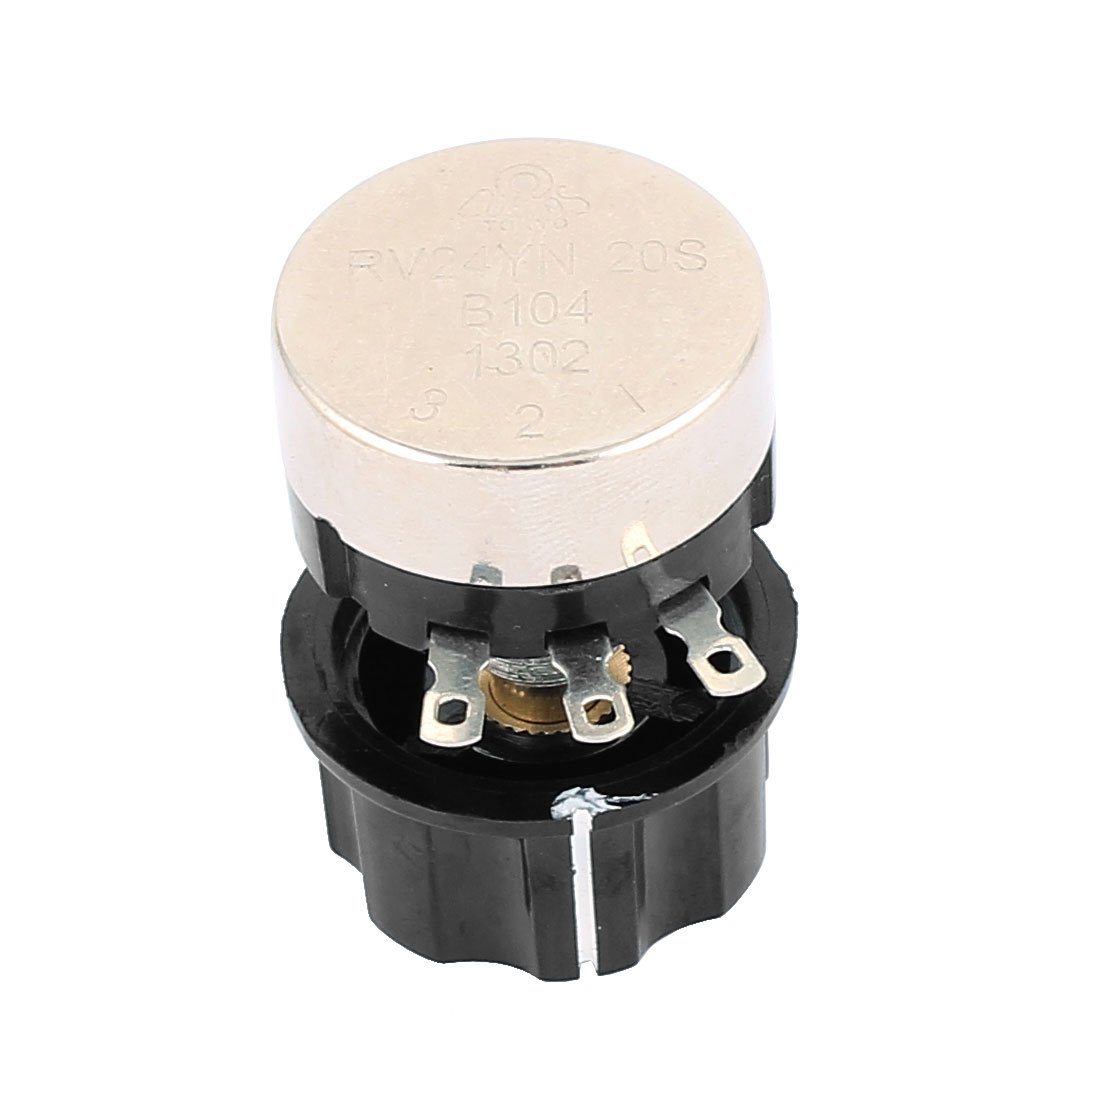 uxcell/® RV24YN20S B102 1K Ohm Resistor 3 Soldering Terminals Wire Wound Potentiometer